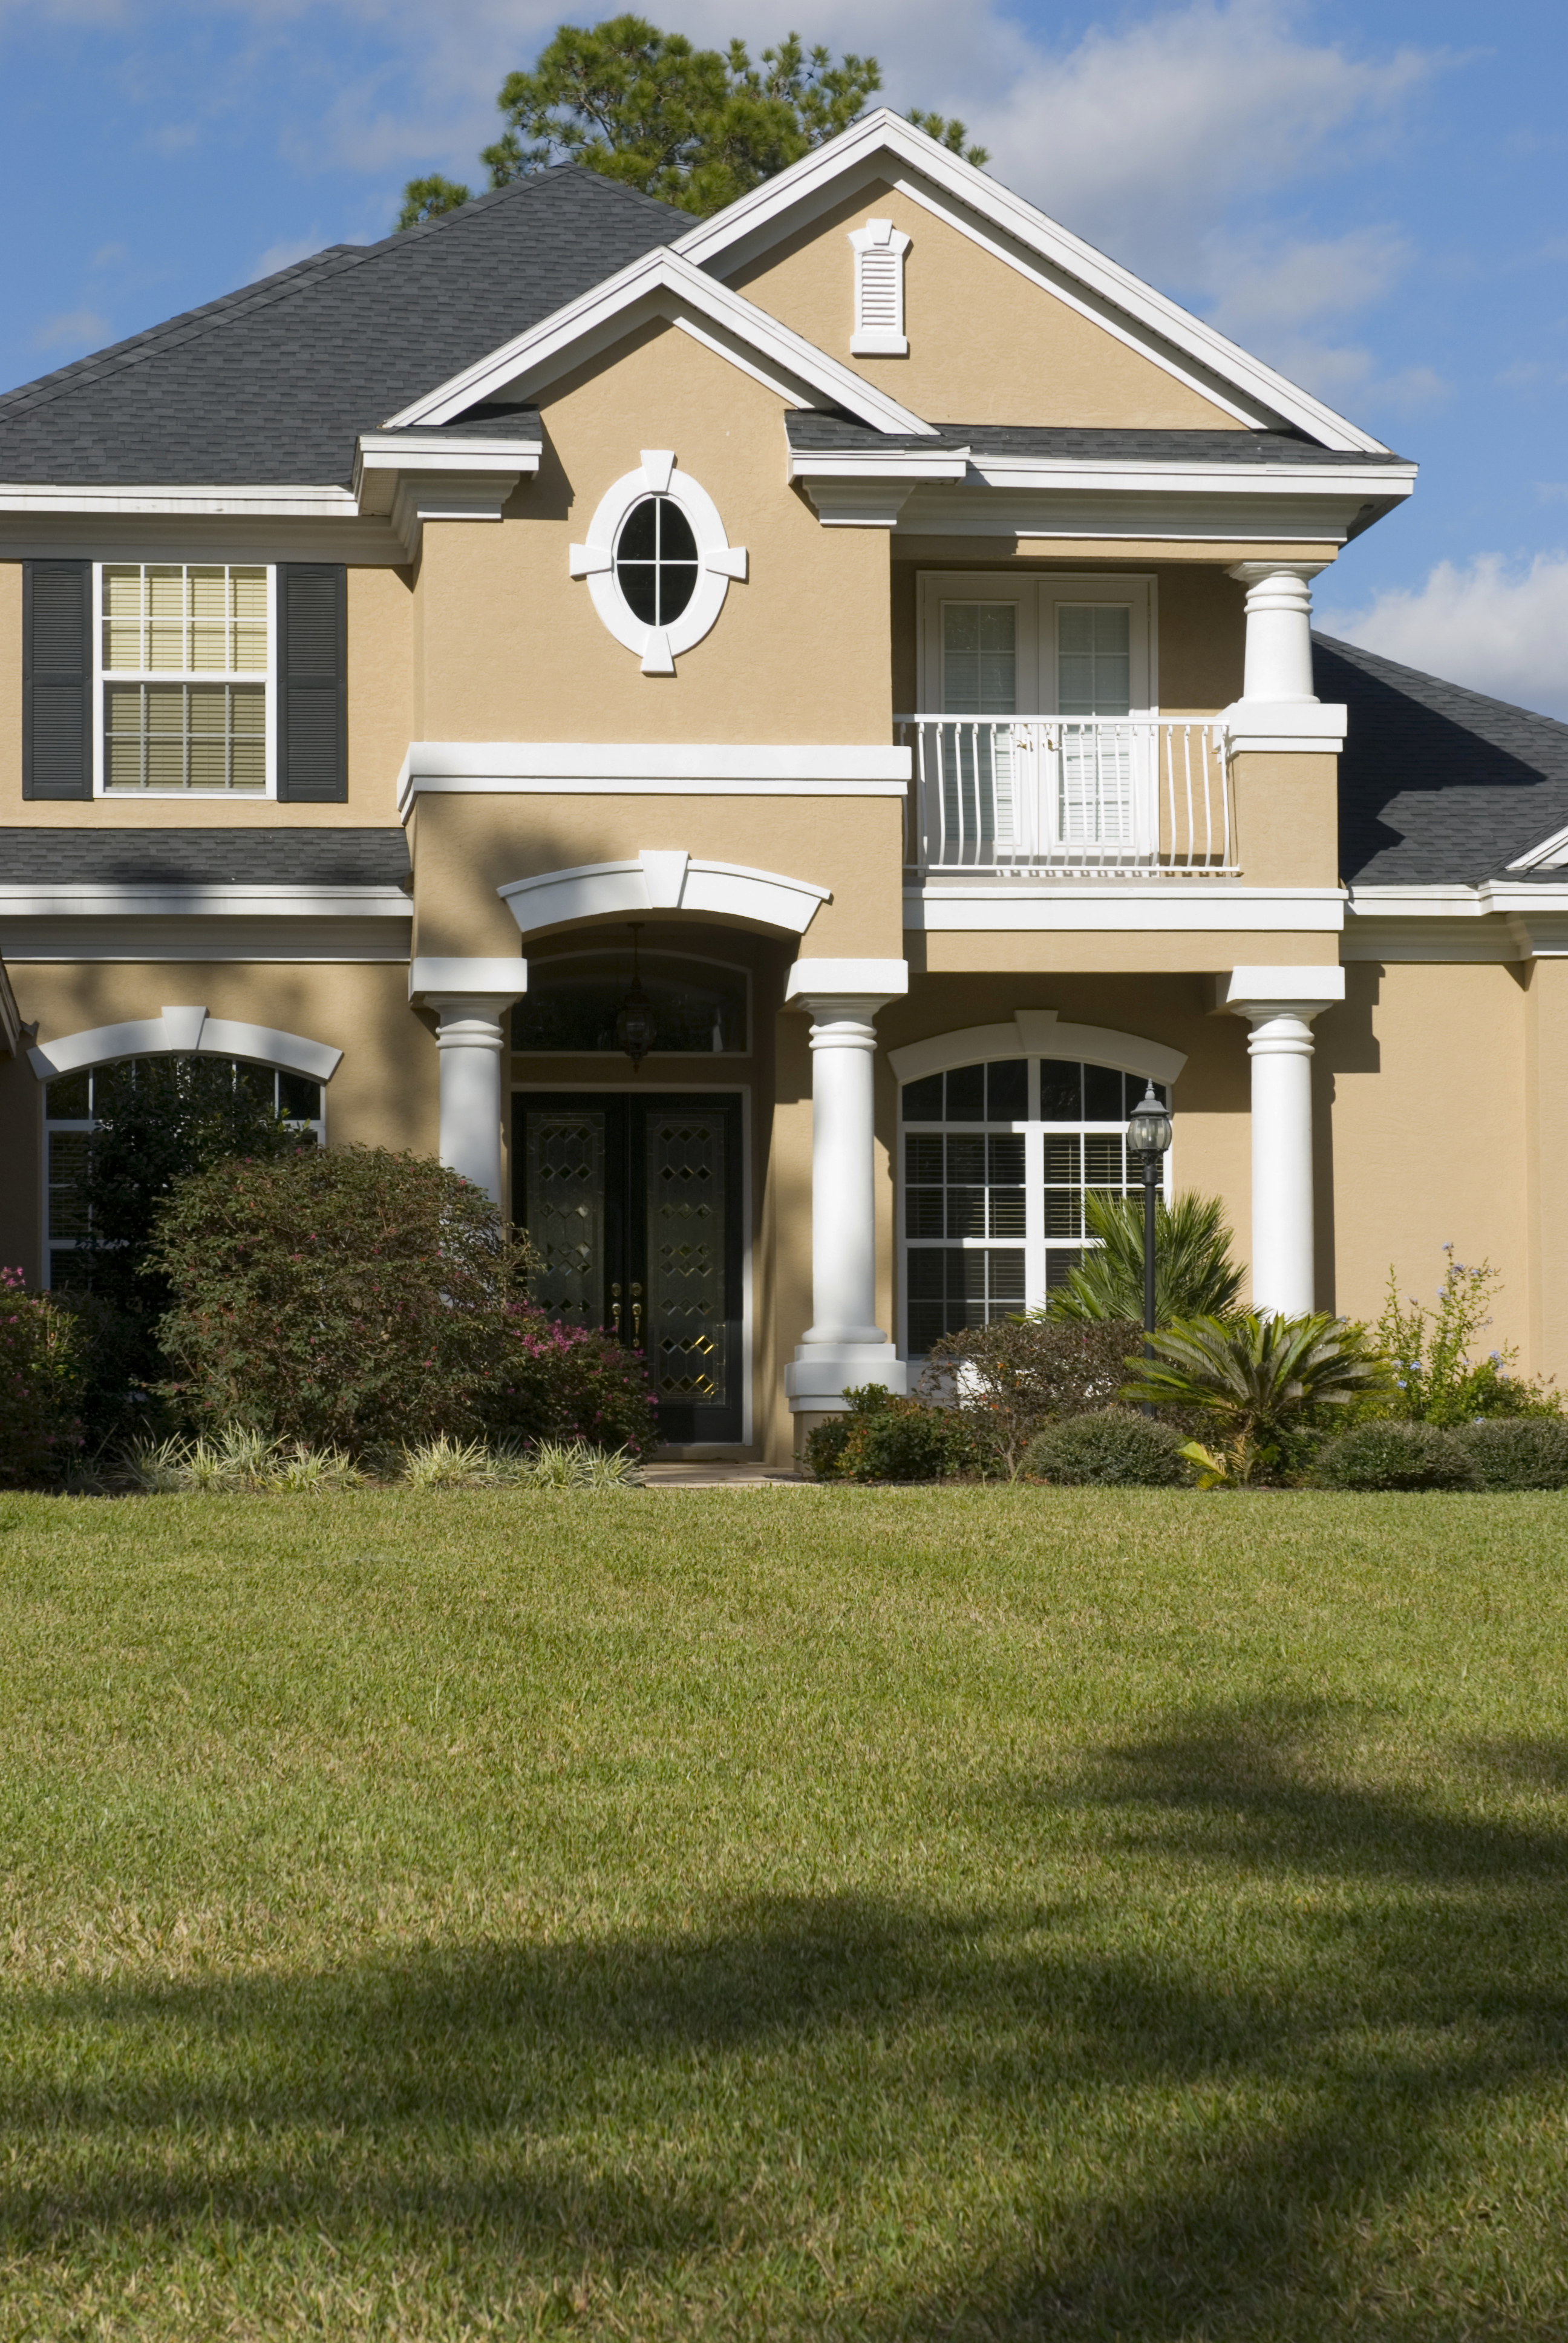 House painting service providers in daytona beach florida for Exterior house painting jacksonville fl